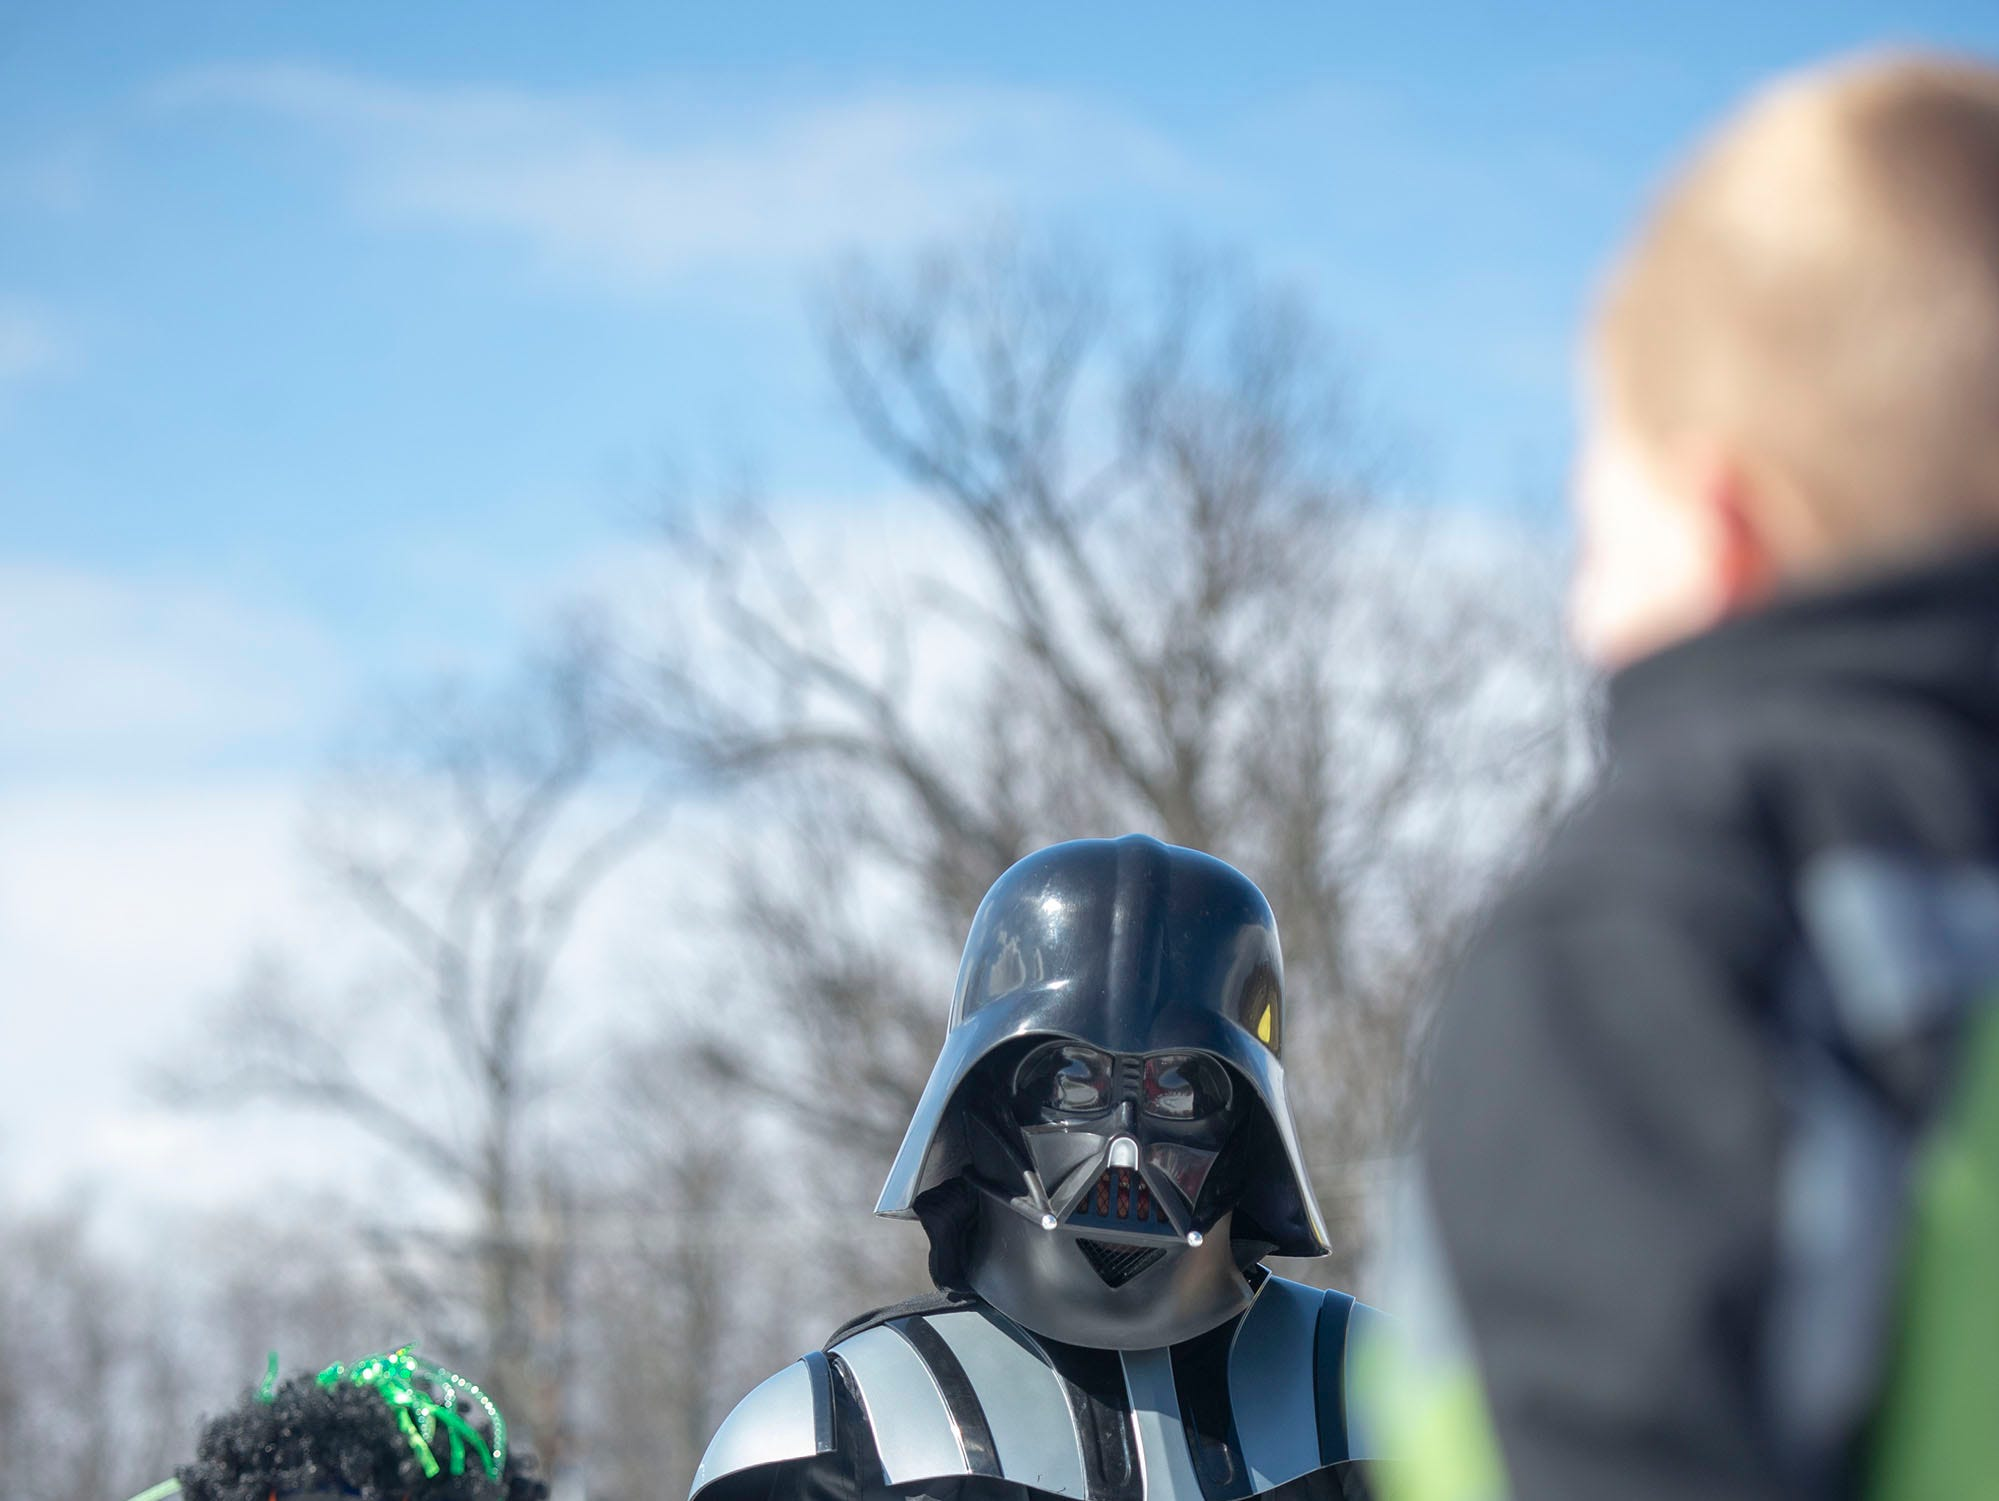 'Darth Vader' was the runner-up at Roundtop Mountain Resort's pond skimming costume contest on Saturday, March 16, 2019. He was the first one down the hill and didn't make it across the pond.